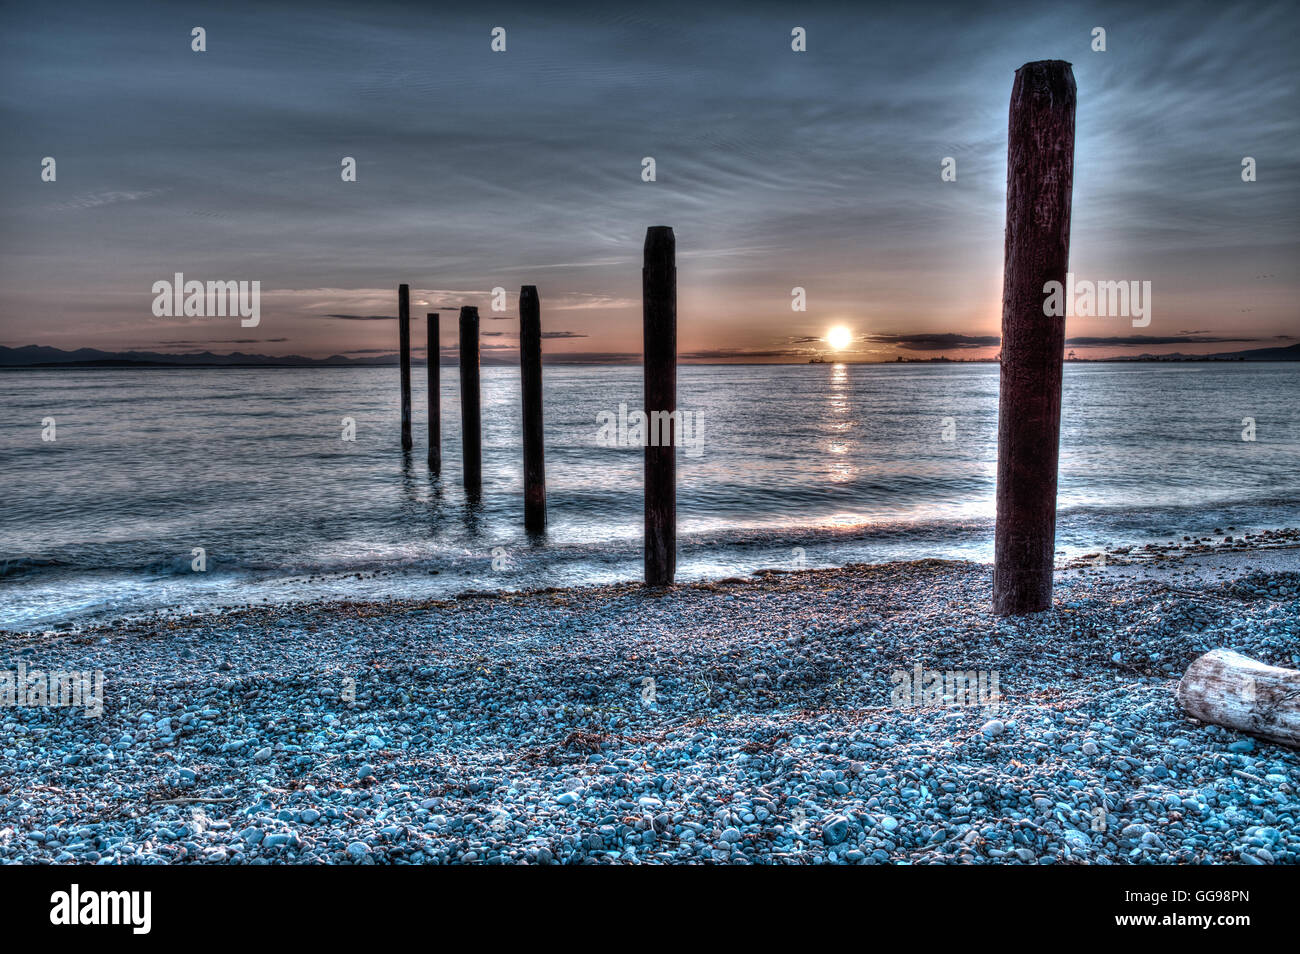 Sunset over the pilings at Point Roberts, Washington state, USA - HDR picture - Stock Image